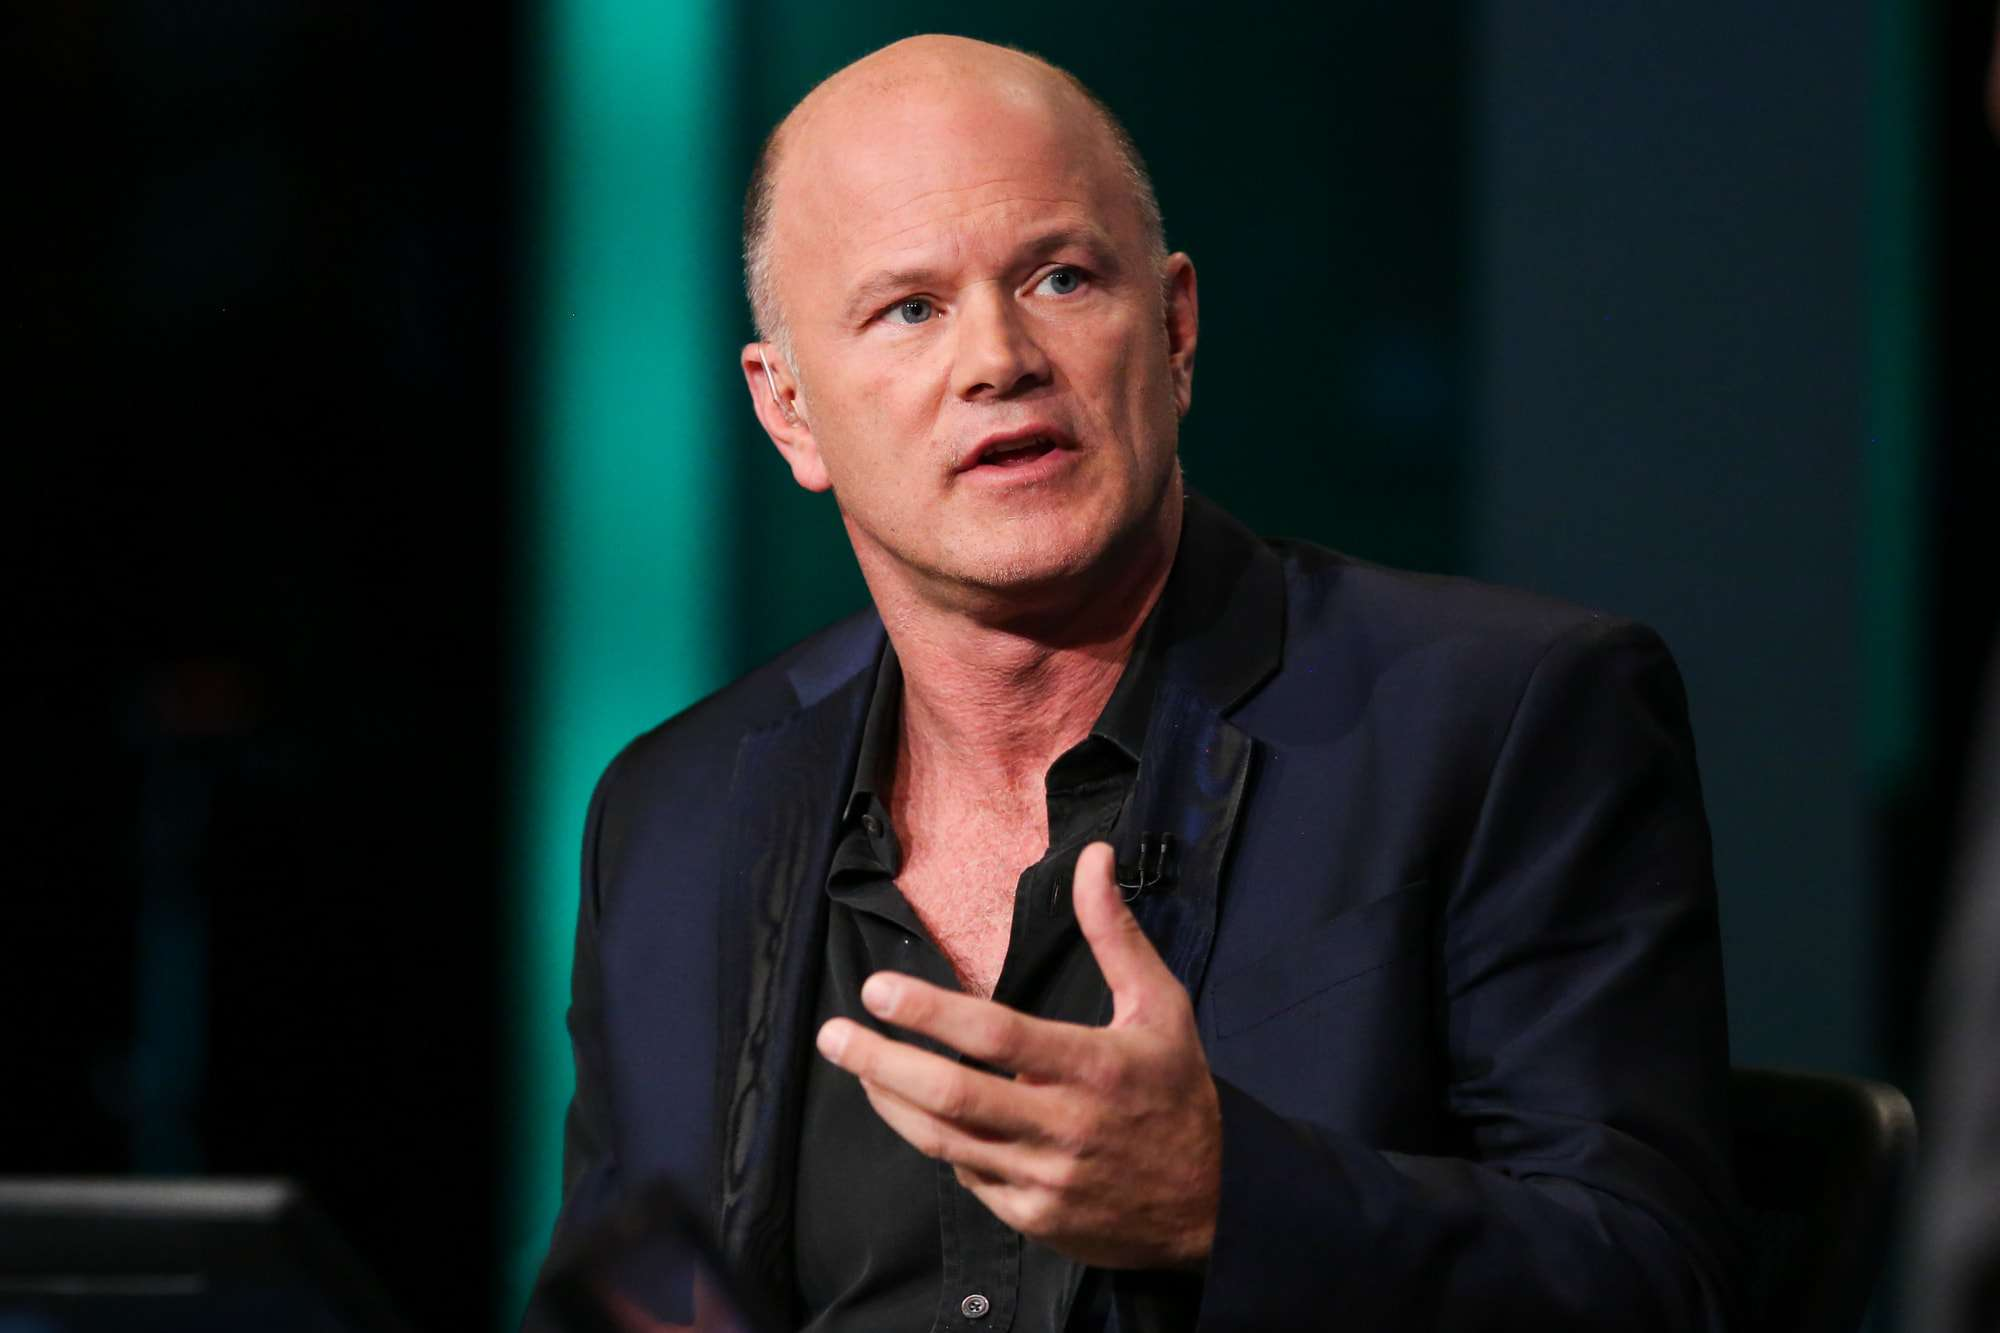 Mike Novogratz. Source: CNBC